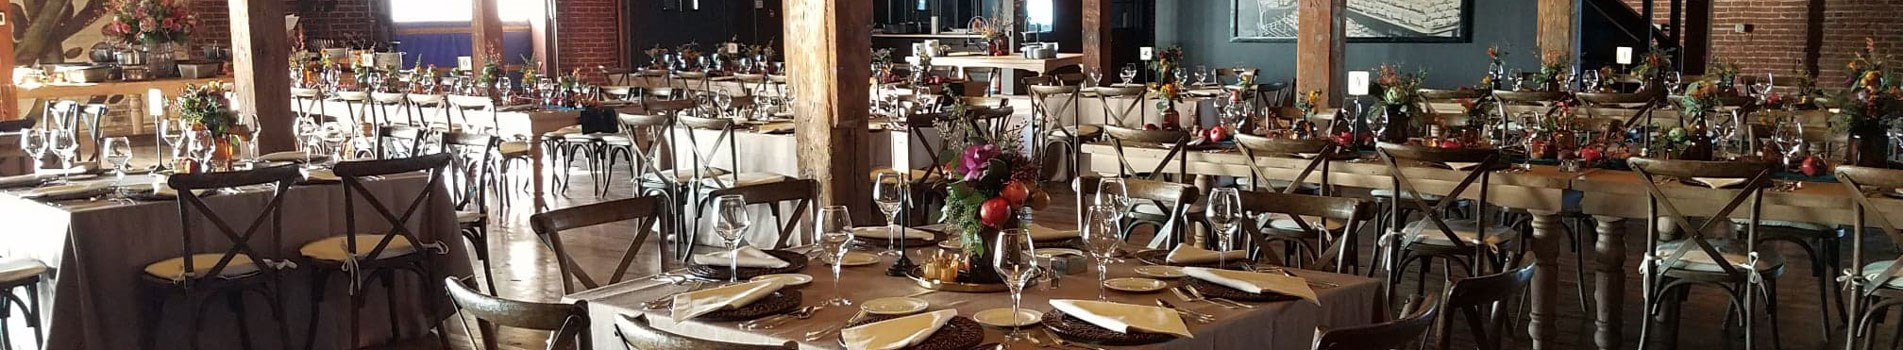 fall wedding reception at n.k. hurst building in downtown Indianapolis